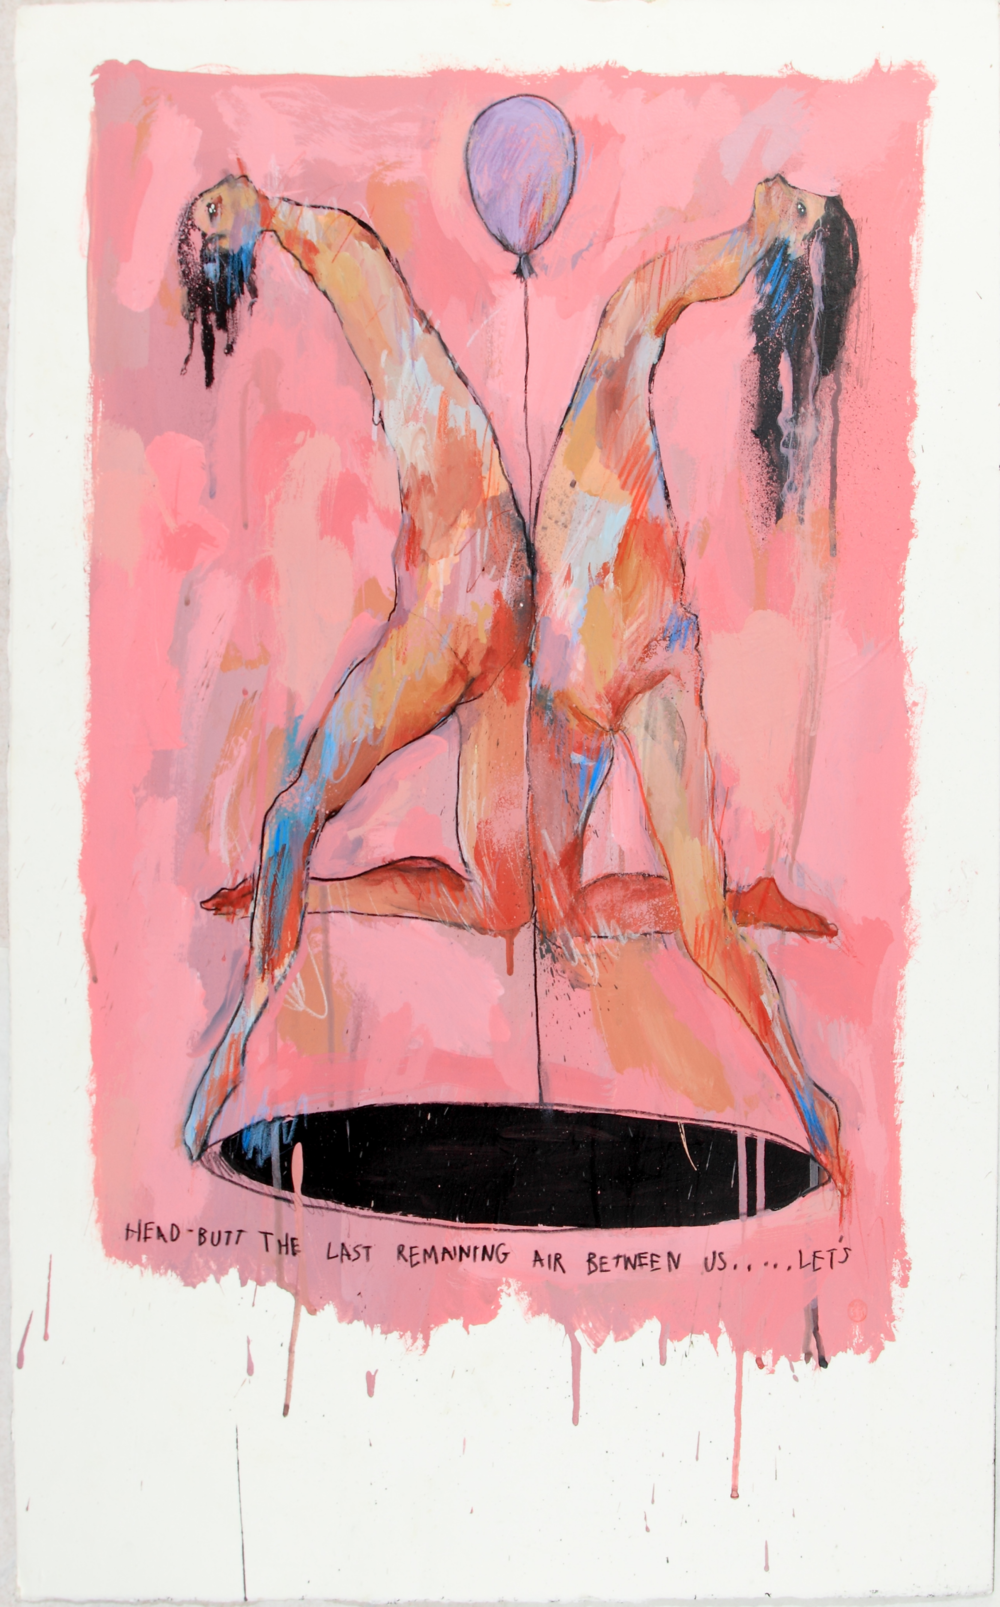 Head Butt the Last Remaining Air Between Us, 2014 Acrylic on paper 27 1/2 x 1 3/4 in.